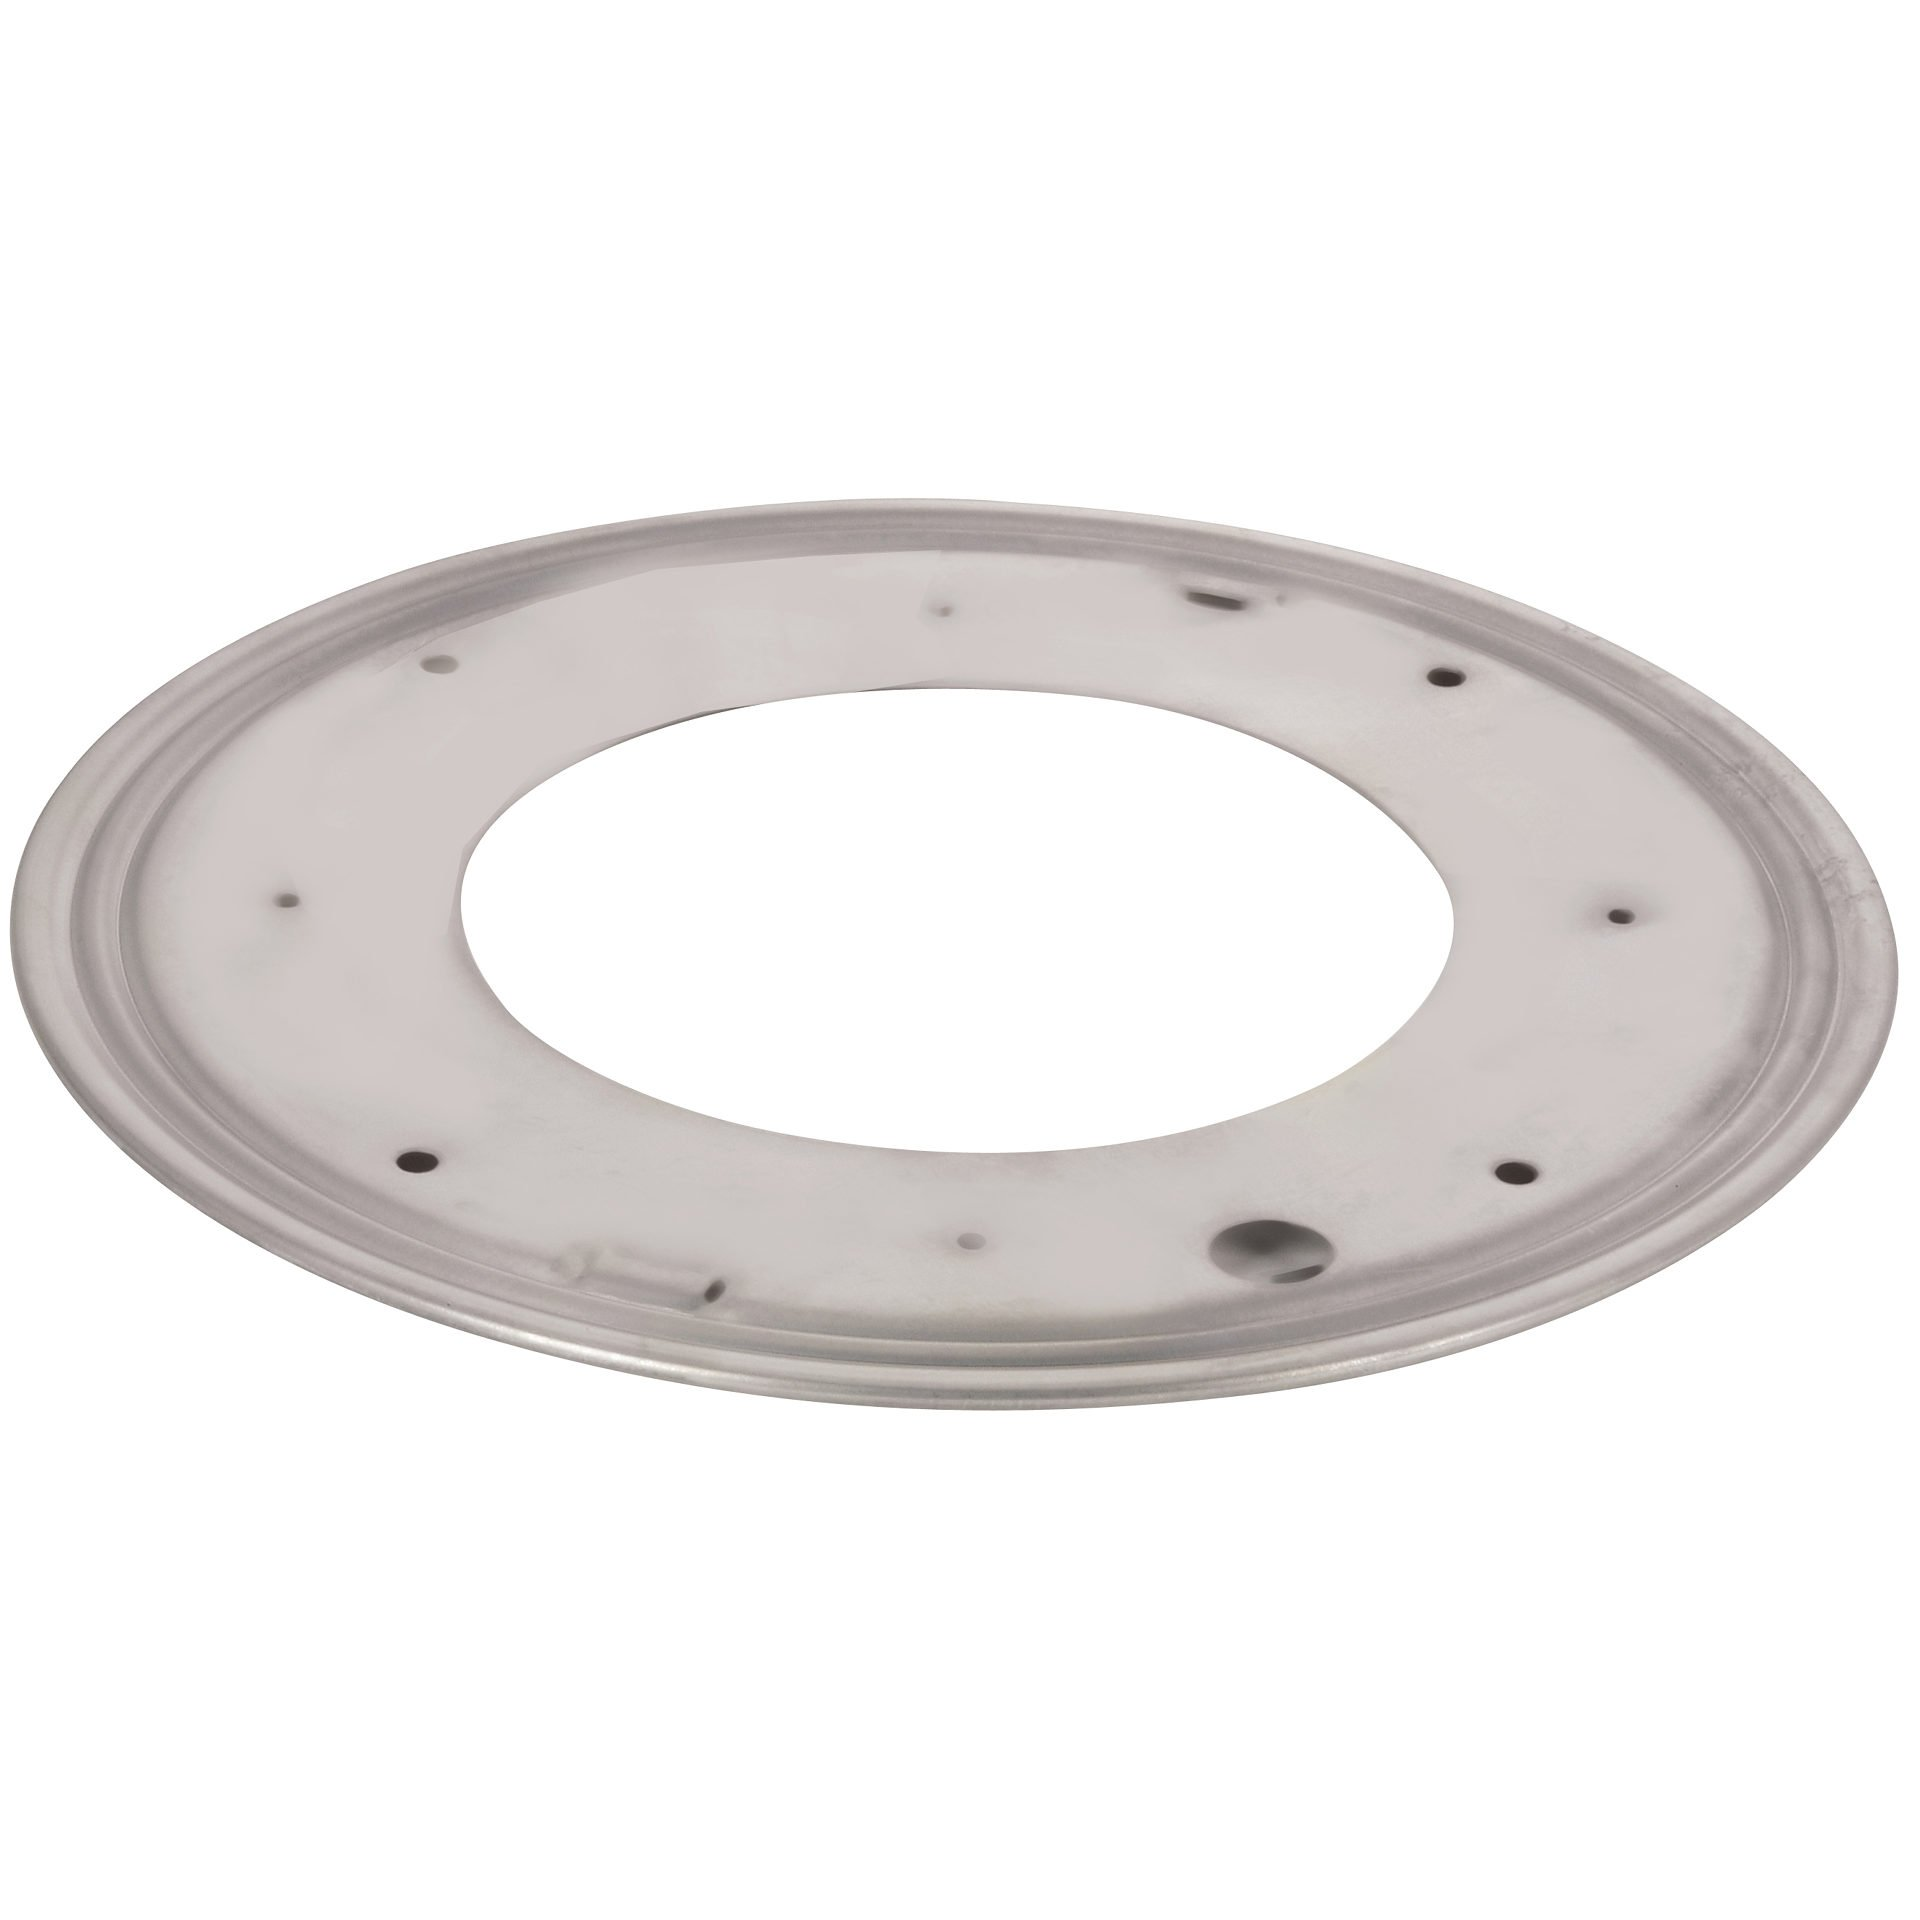 Richelieu Hardware UC8812 Swivel Plate, 9 in, Zinc